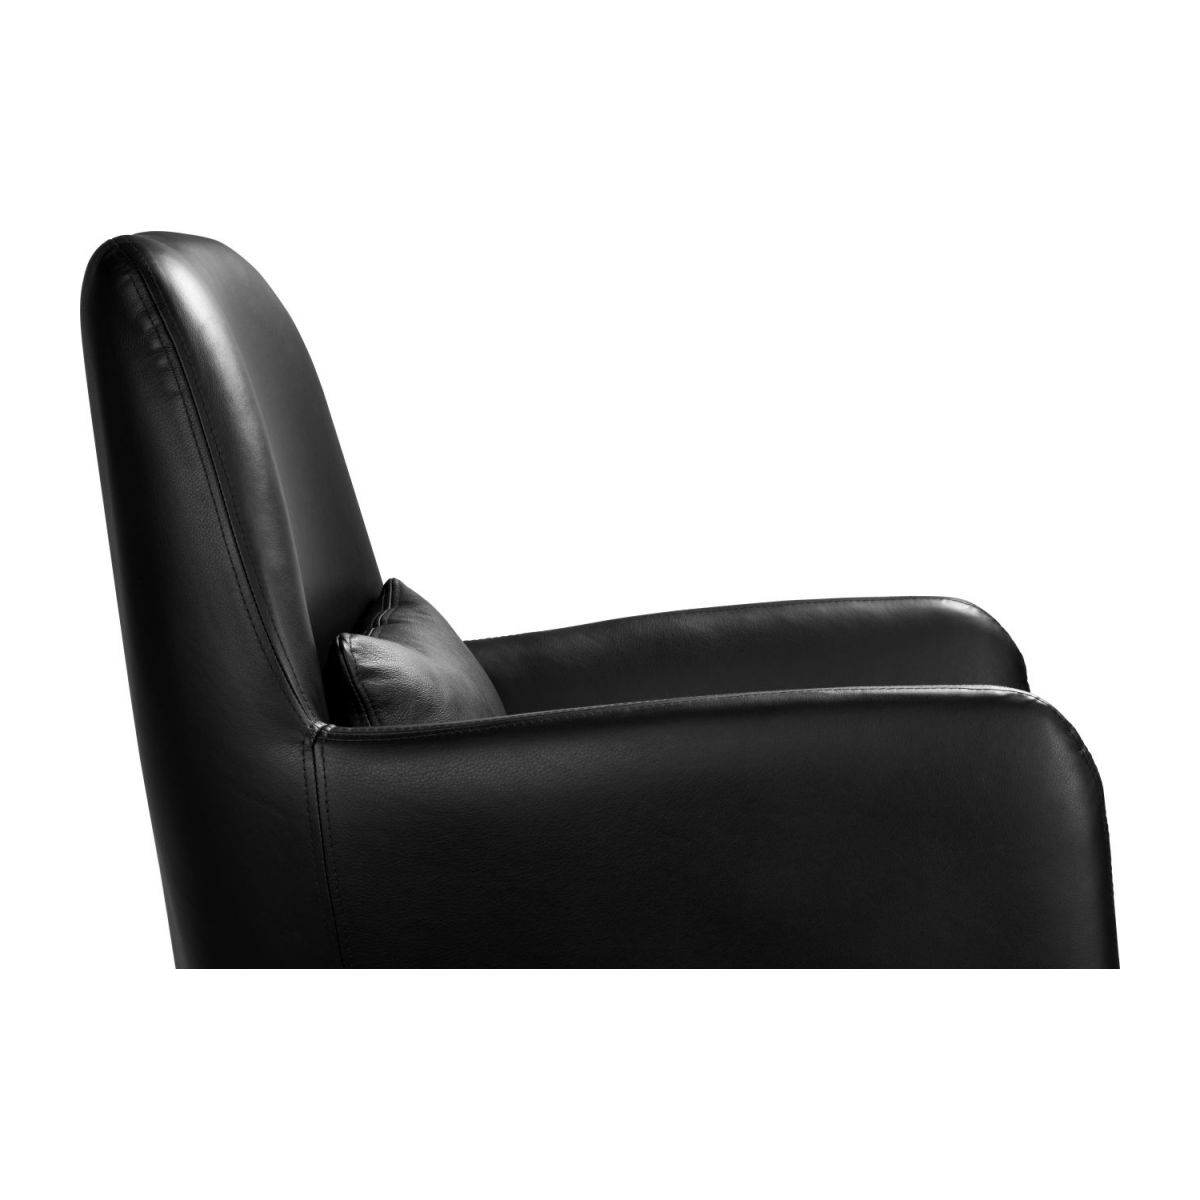 Leather armchair n°7